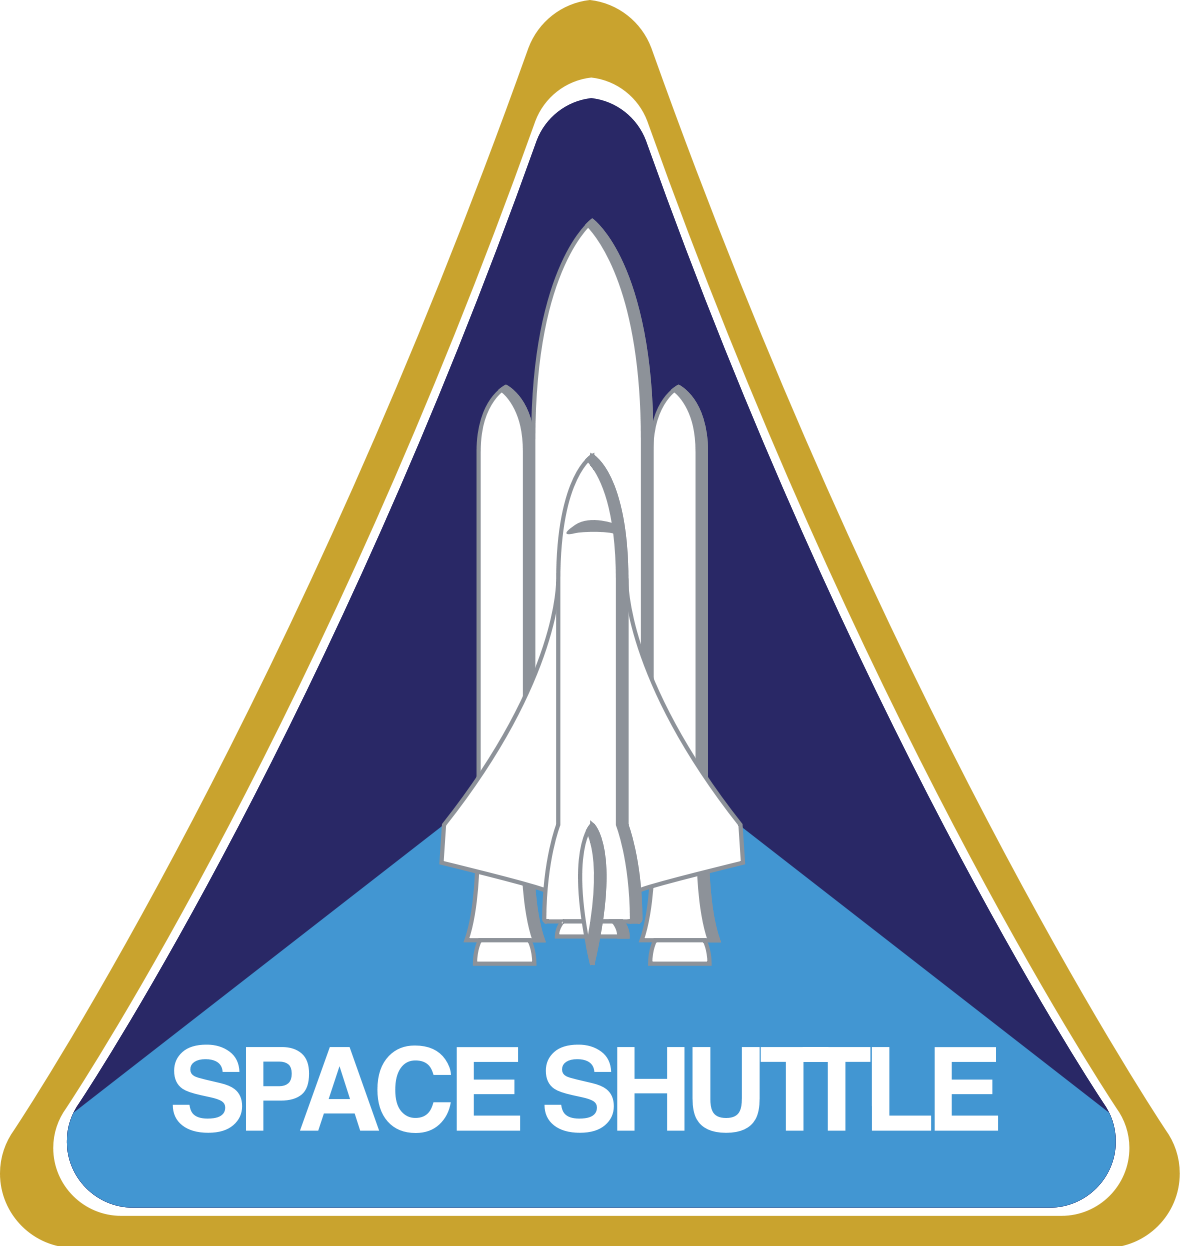 Space Shuttle program.